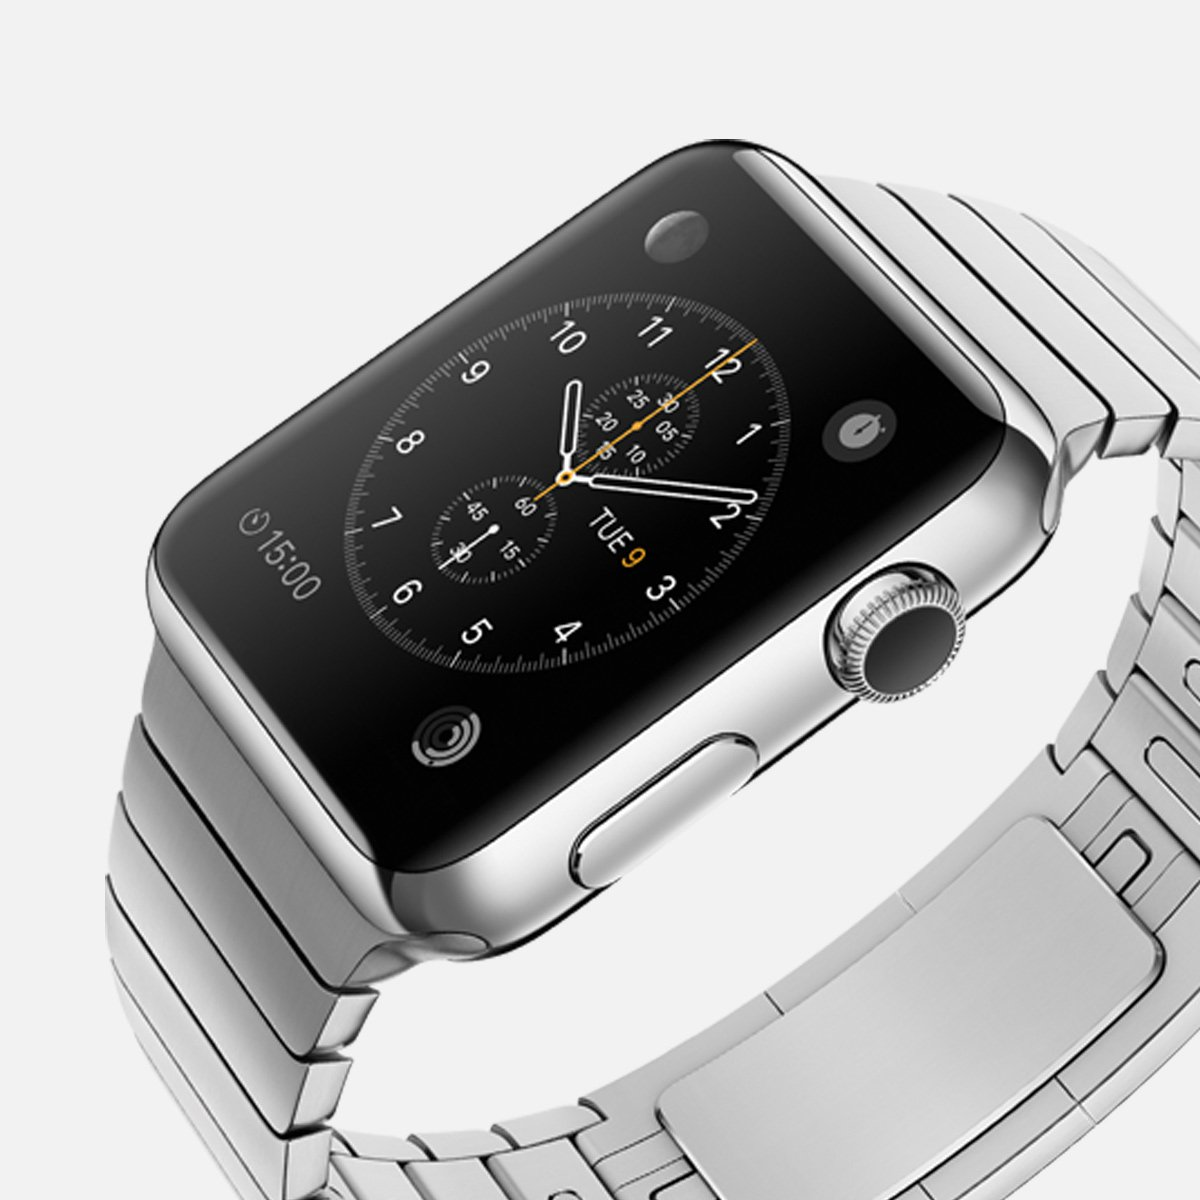 Apple Watch To Ship In April